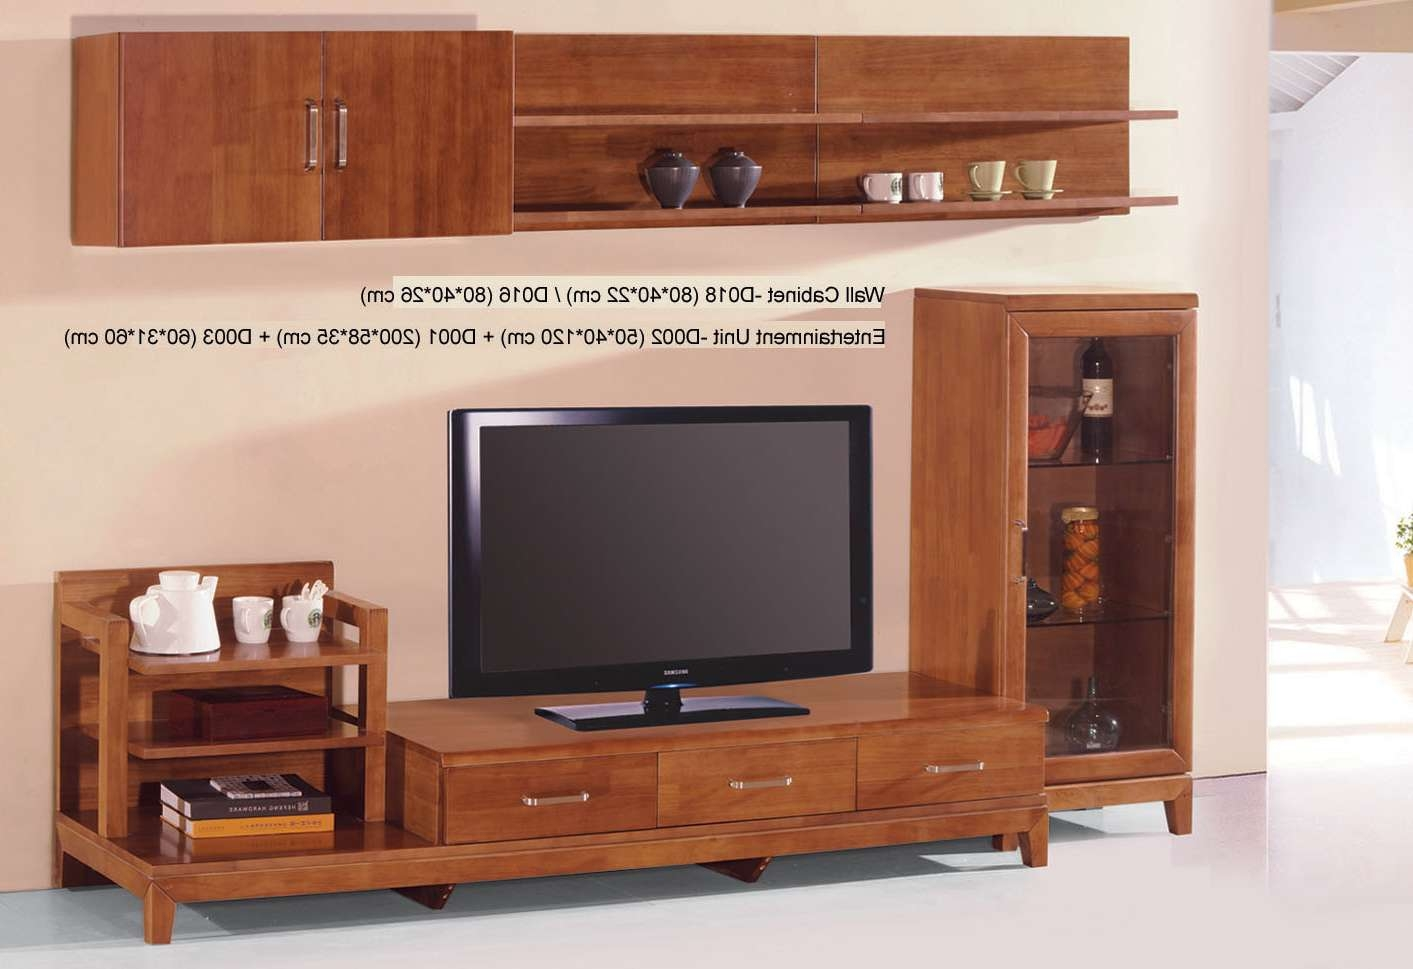 Country Style Tv Stand Unit Idea In Honey Oak Finish With Three Intended For Honey Oak Tv Stands (View 1 of 15)